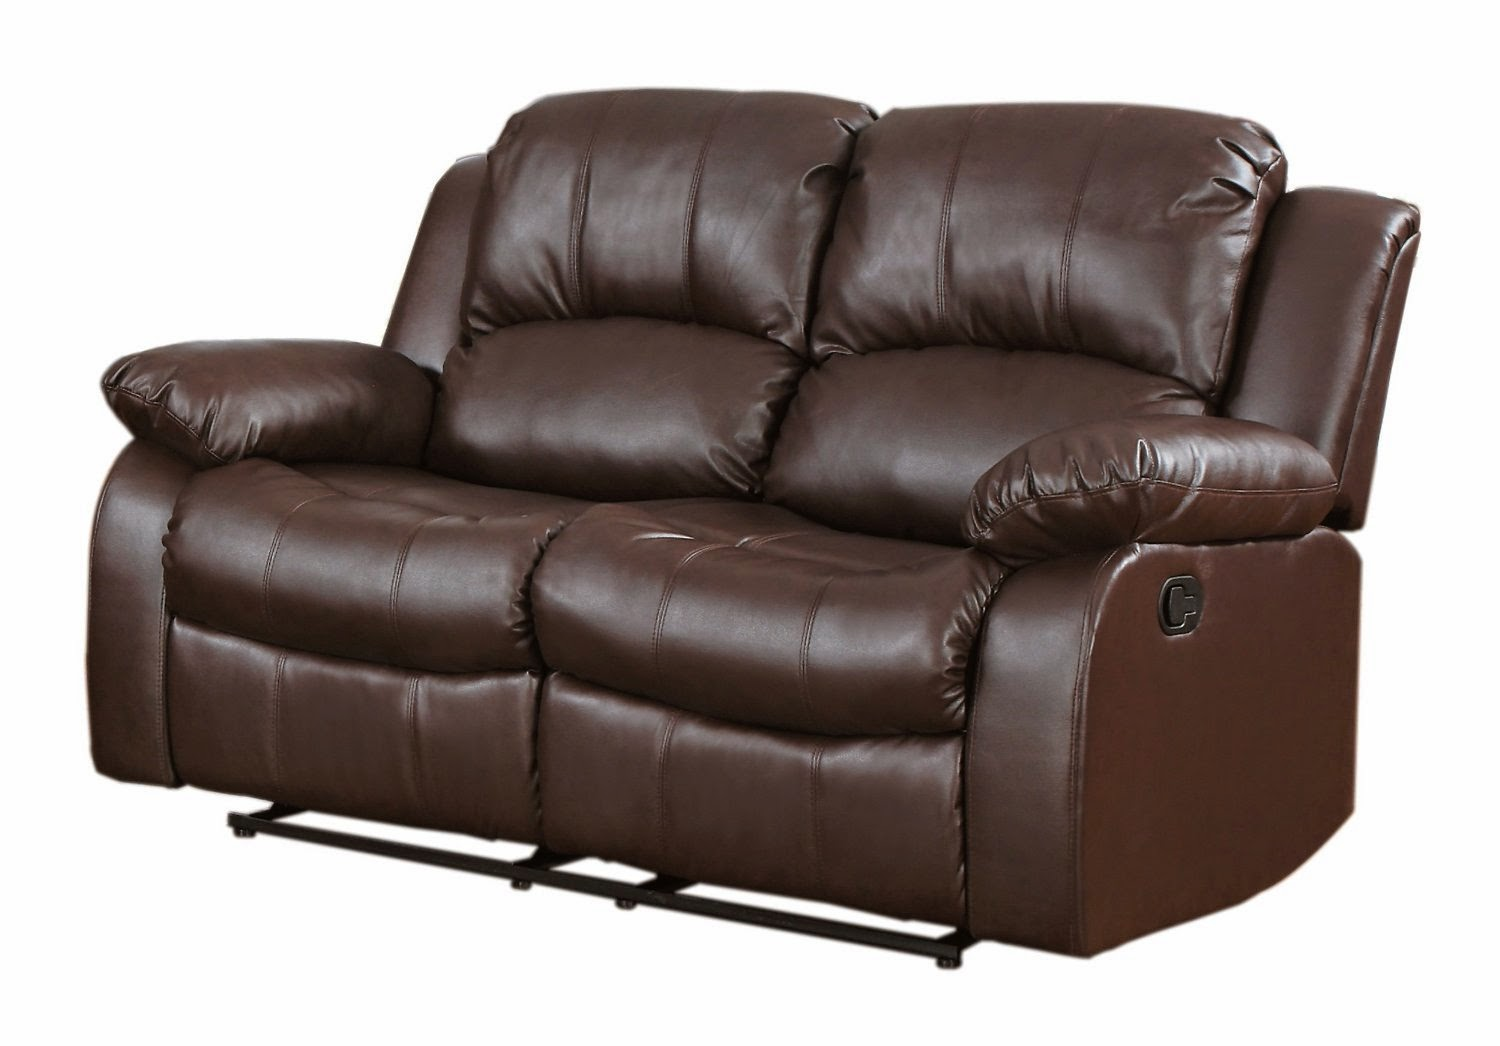 Where is the best place to buy recliner sofa 2 seater electric recliner leather sofa Loveseats that recline